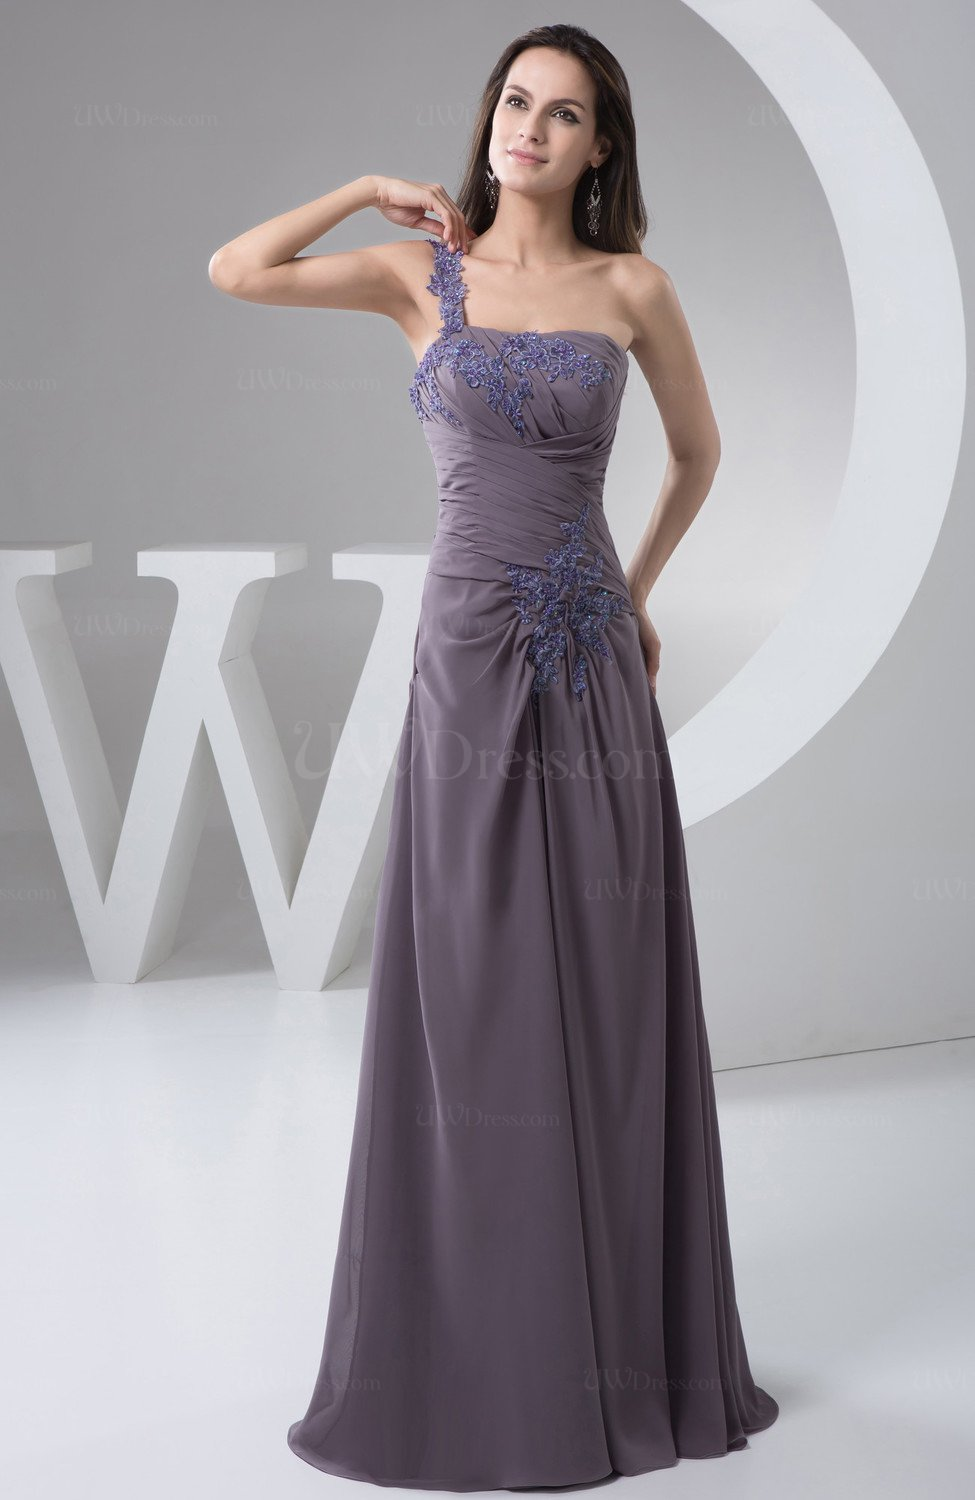 Chiffon bridesmaid dress one shoulder classy summer petite for Cocktail length wedding dresses